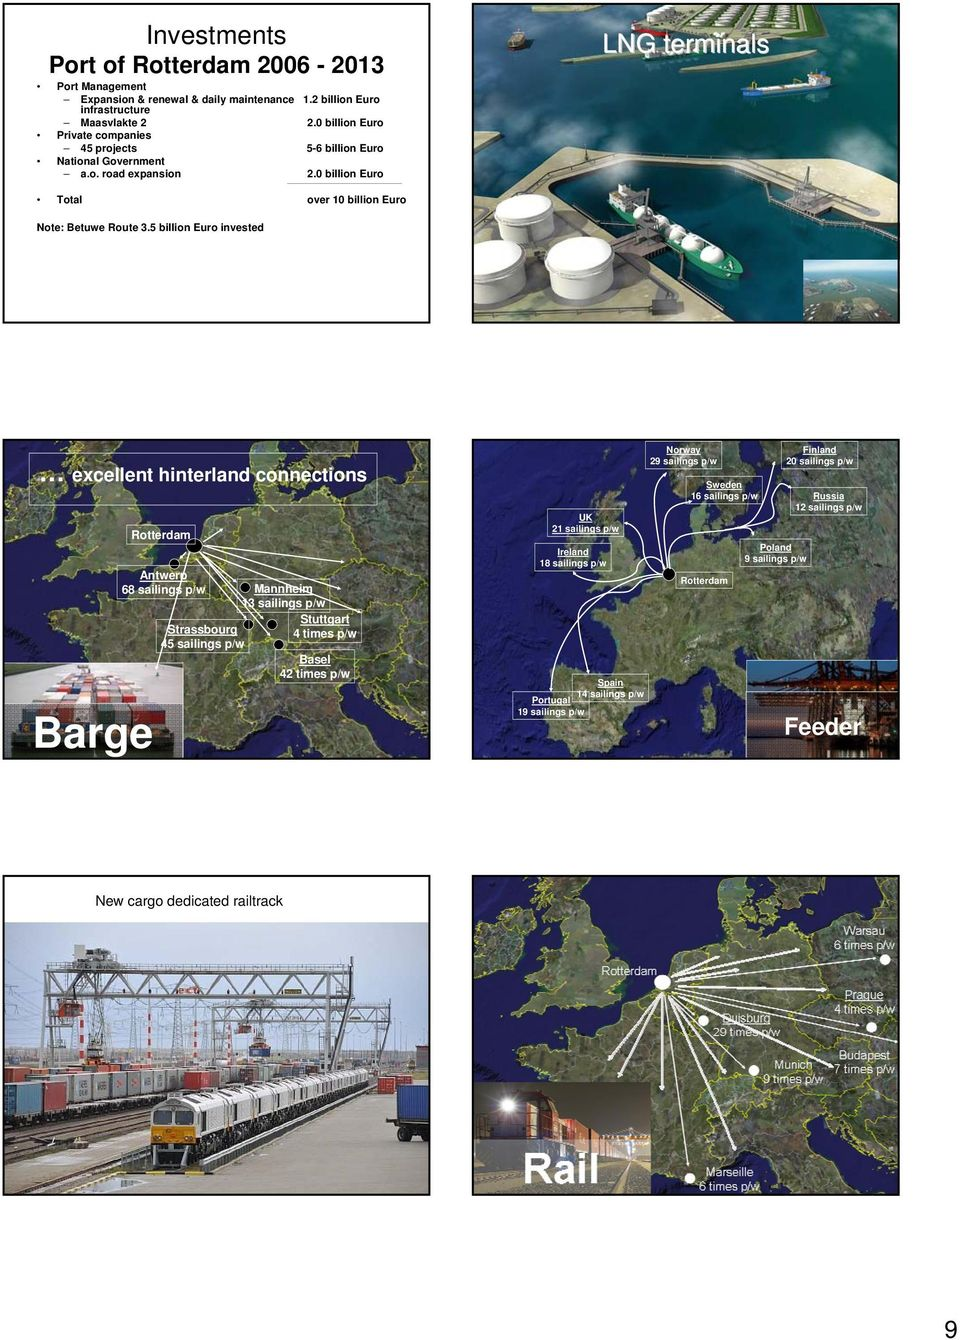 5 billion Euro invested excellent hinterland connections Barge Rotterdam Antwerp 68 sailings p/w Mannheim 13 sailings p/w Strassbourg 45 sailings p/w Stuttgart 4 times p/w Basel 42 times p/w